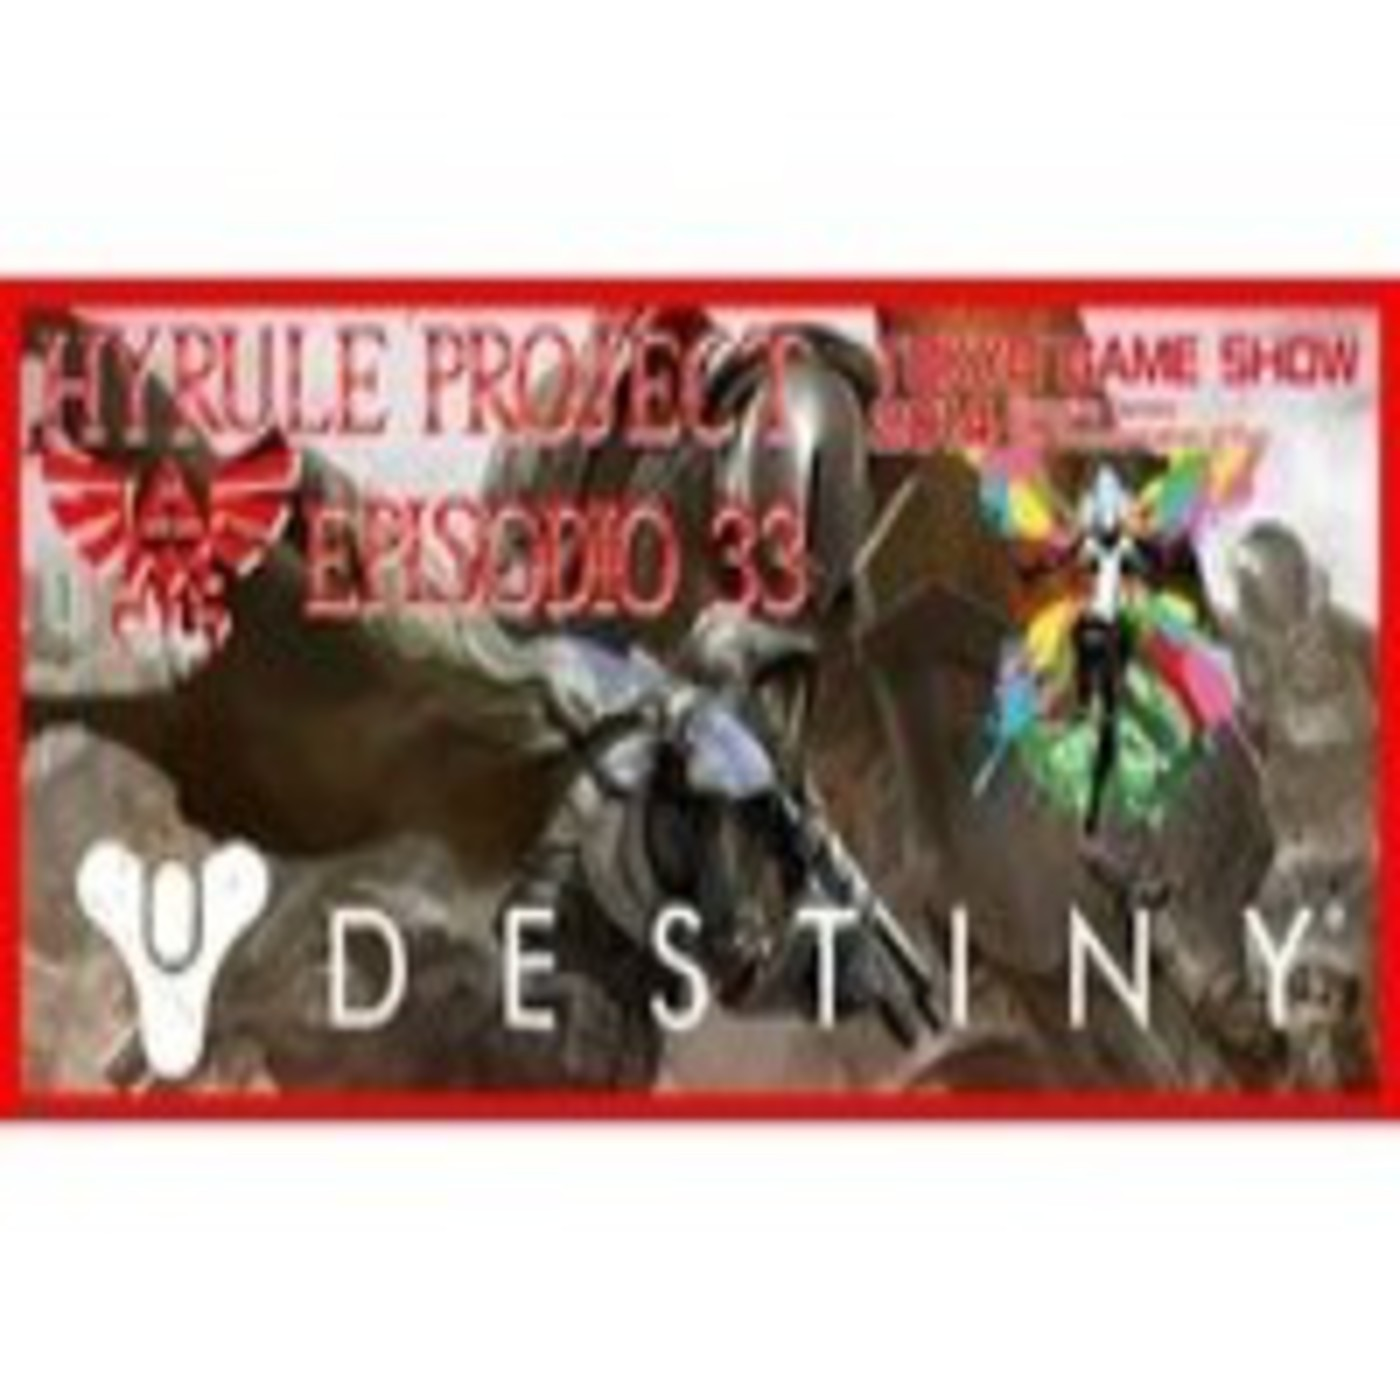 Hyrule Project Episodio 33: Destiny